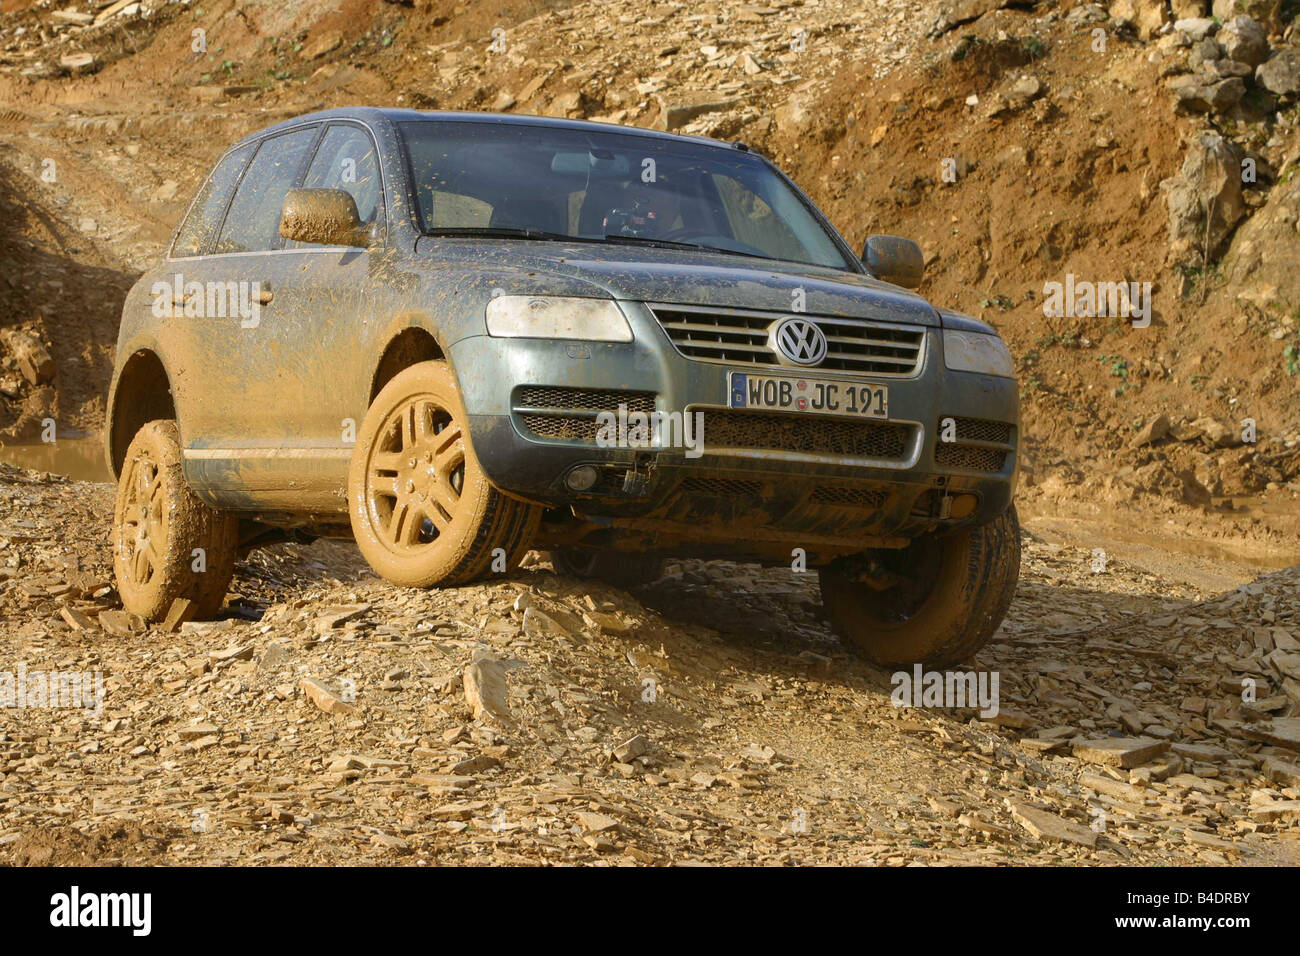 Car Vw Volkswagen Touareg V10 Tdi Cross Country Vehicle Model Year Stock Photo Alamy